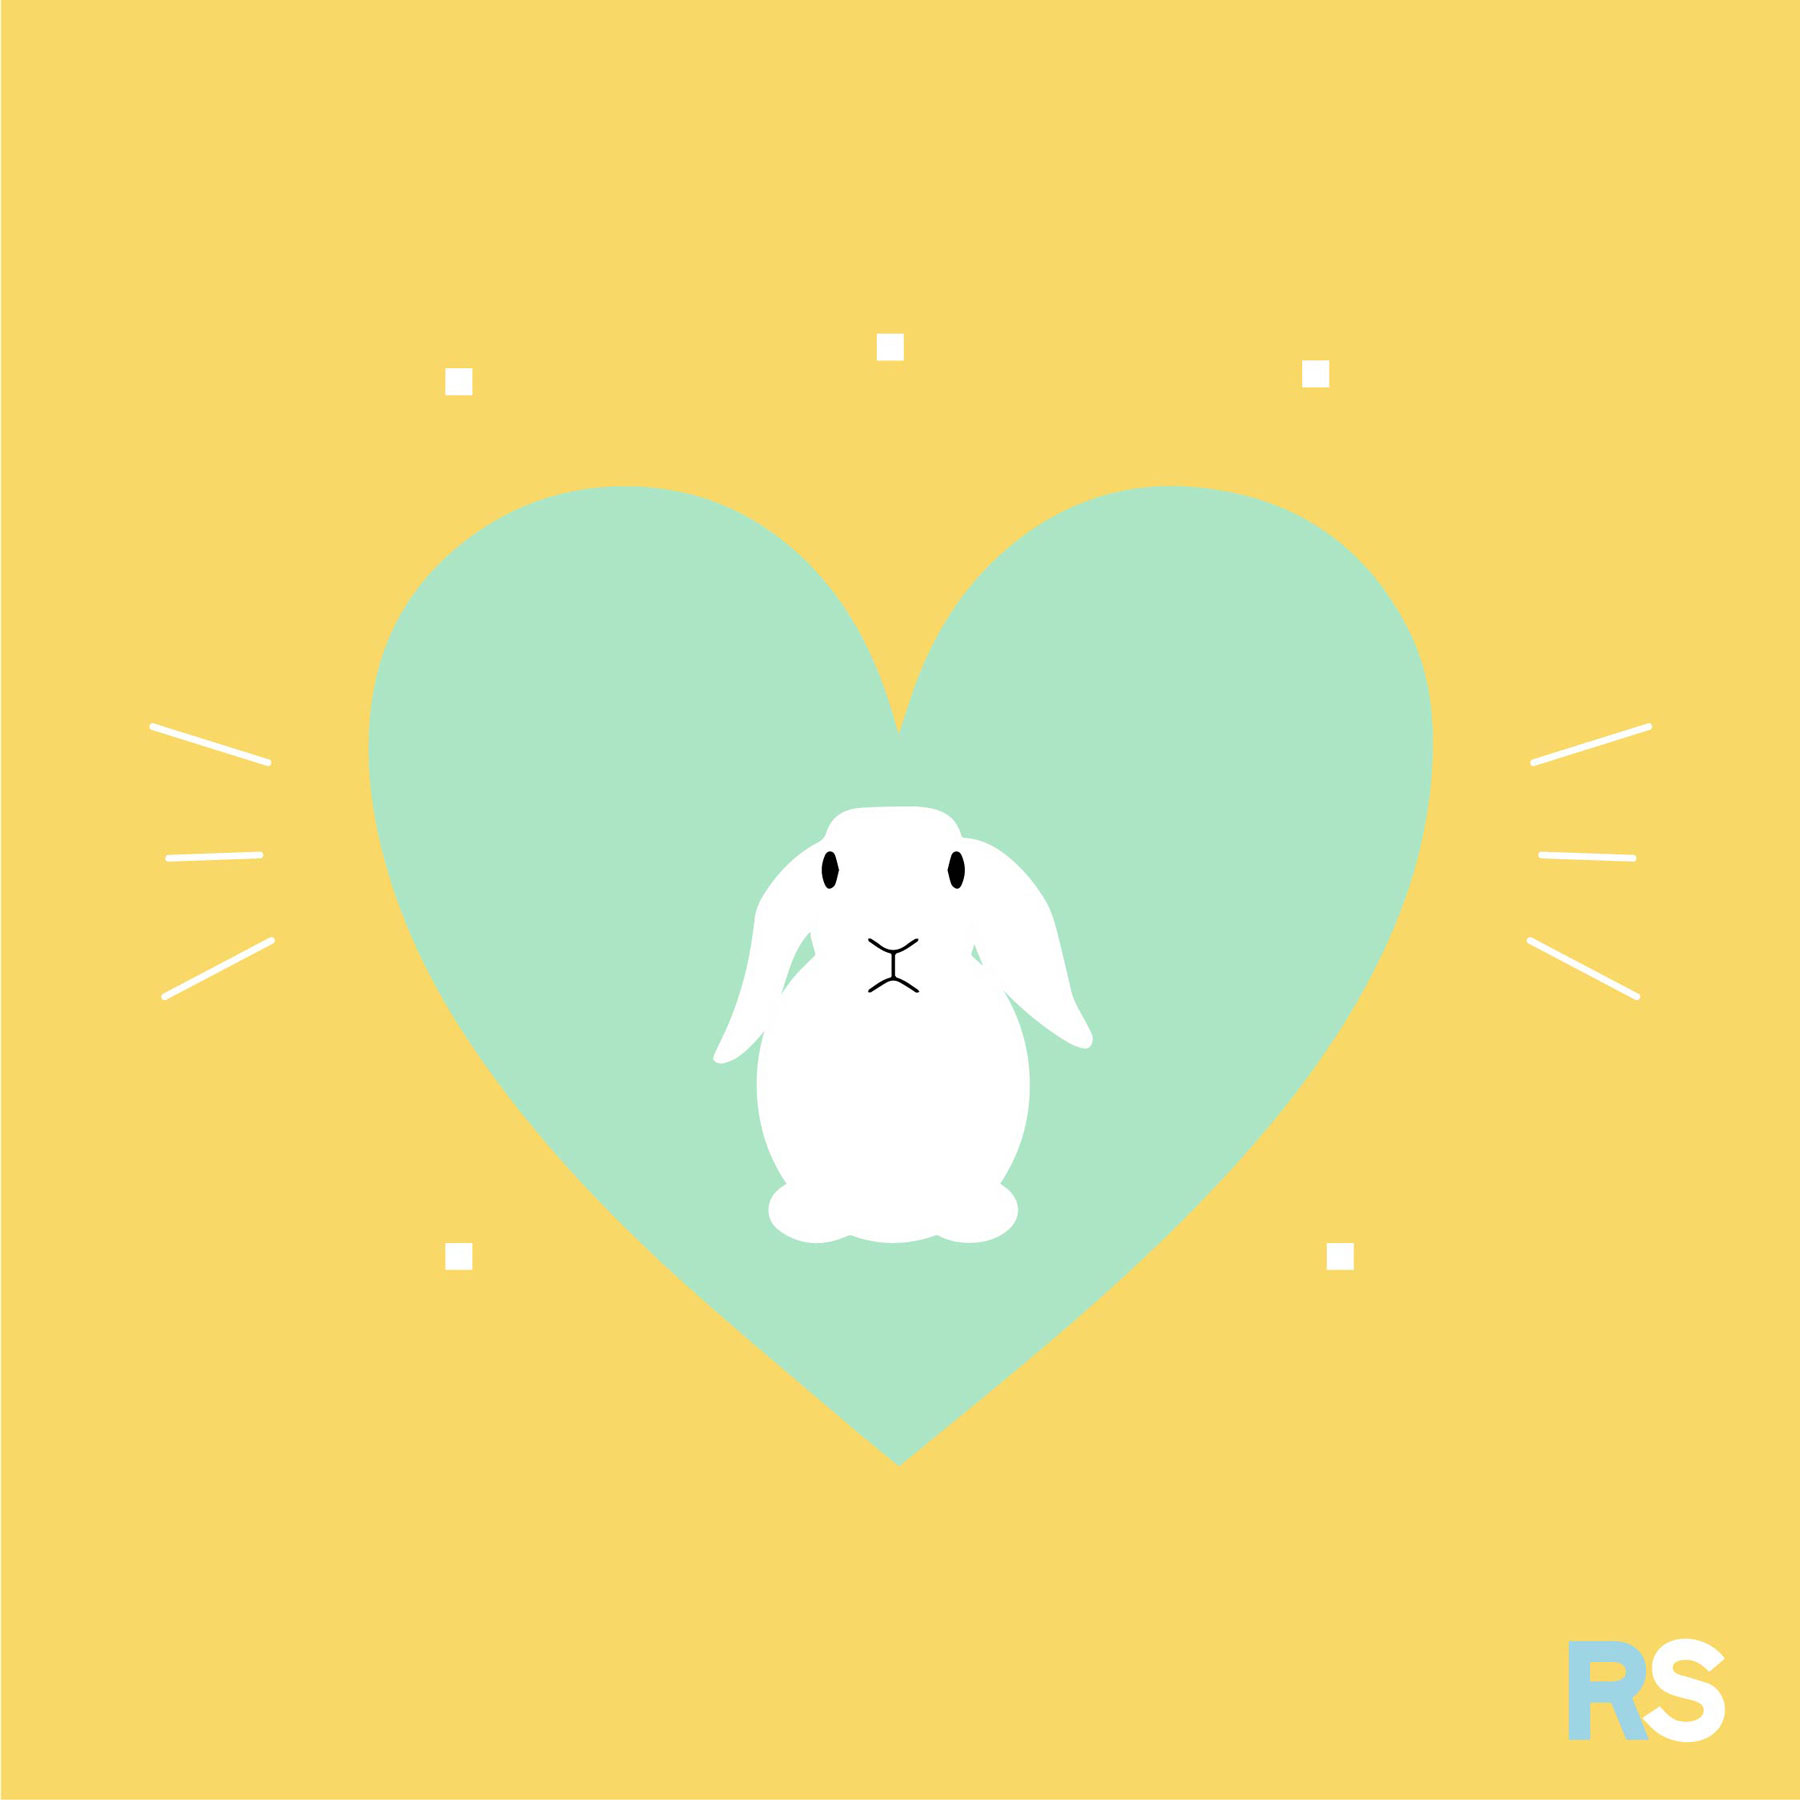 Easter quotes, captions, and messages - Easter captions and messages cover bunny